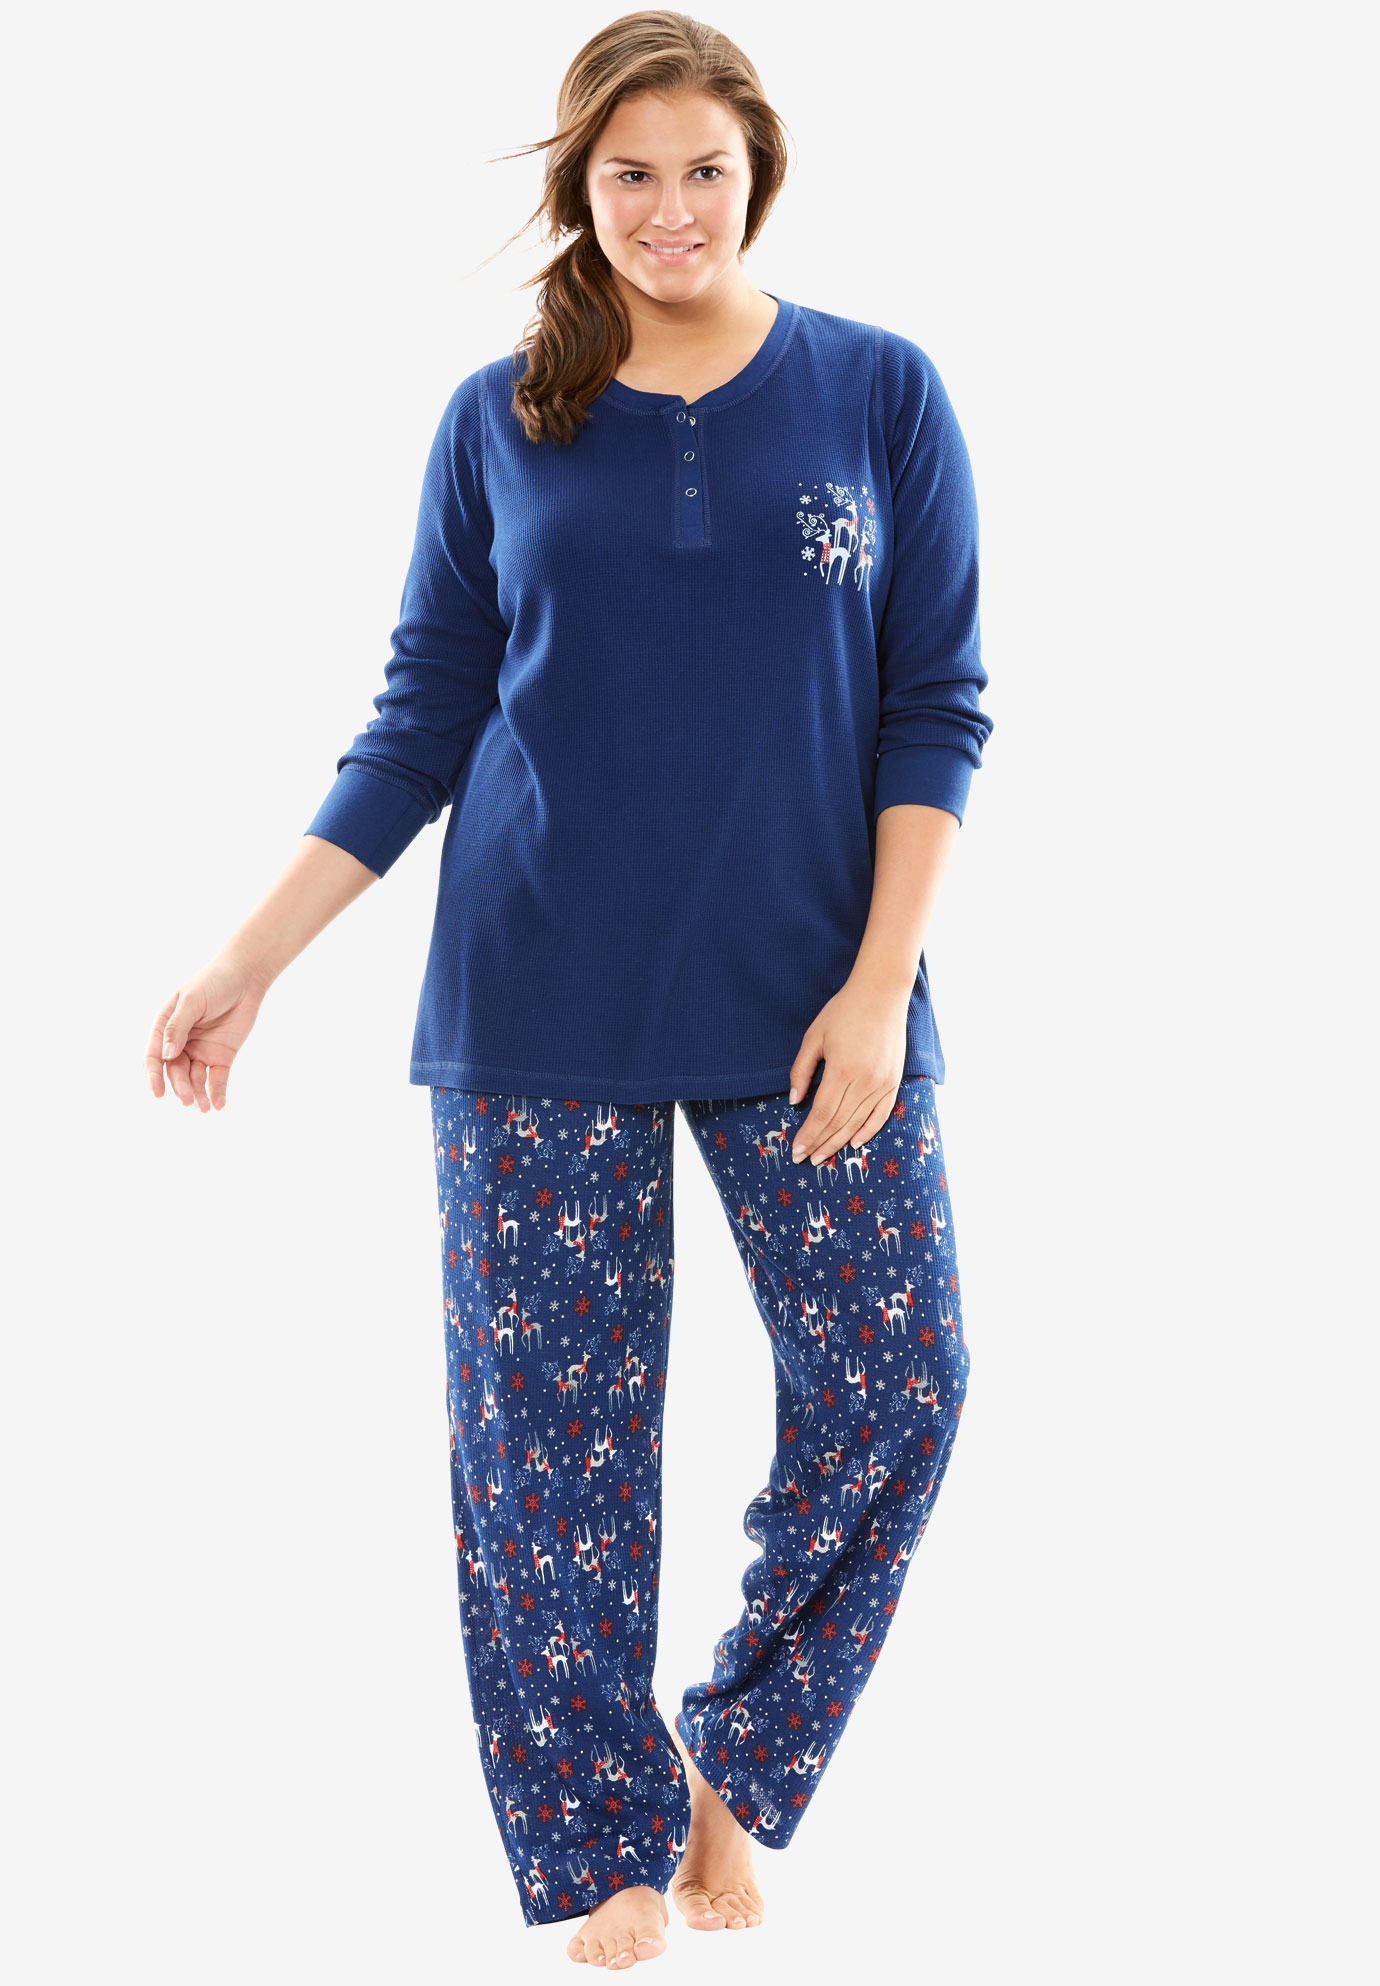 Printed thermal knit Henley pj set by Dreams & Co.®, EVENING BLUE REINDEER, hi-res